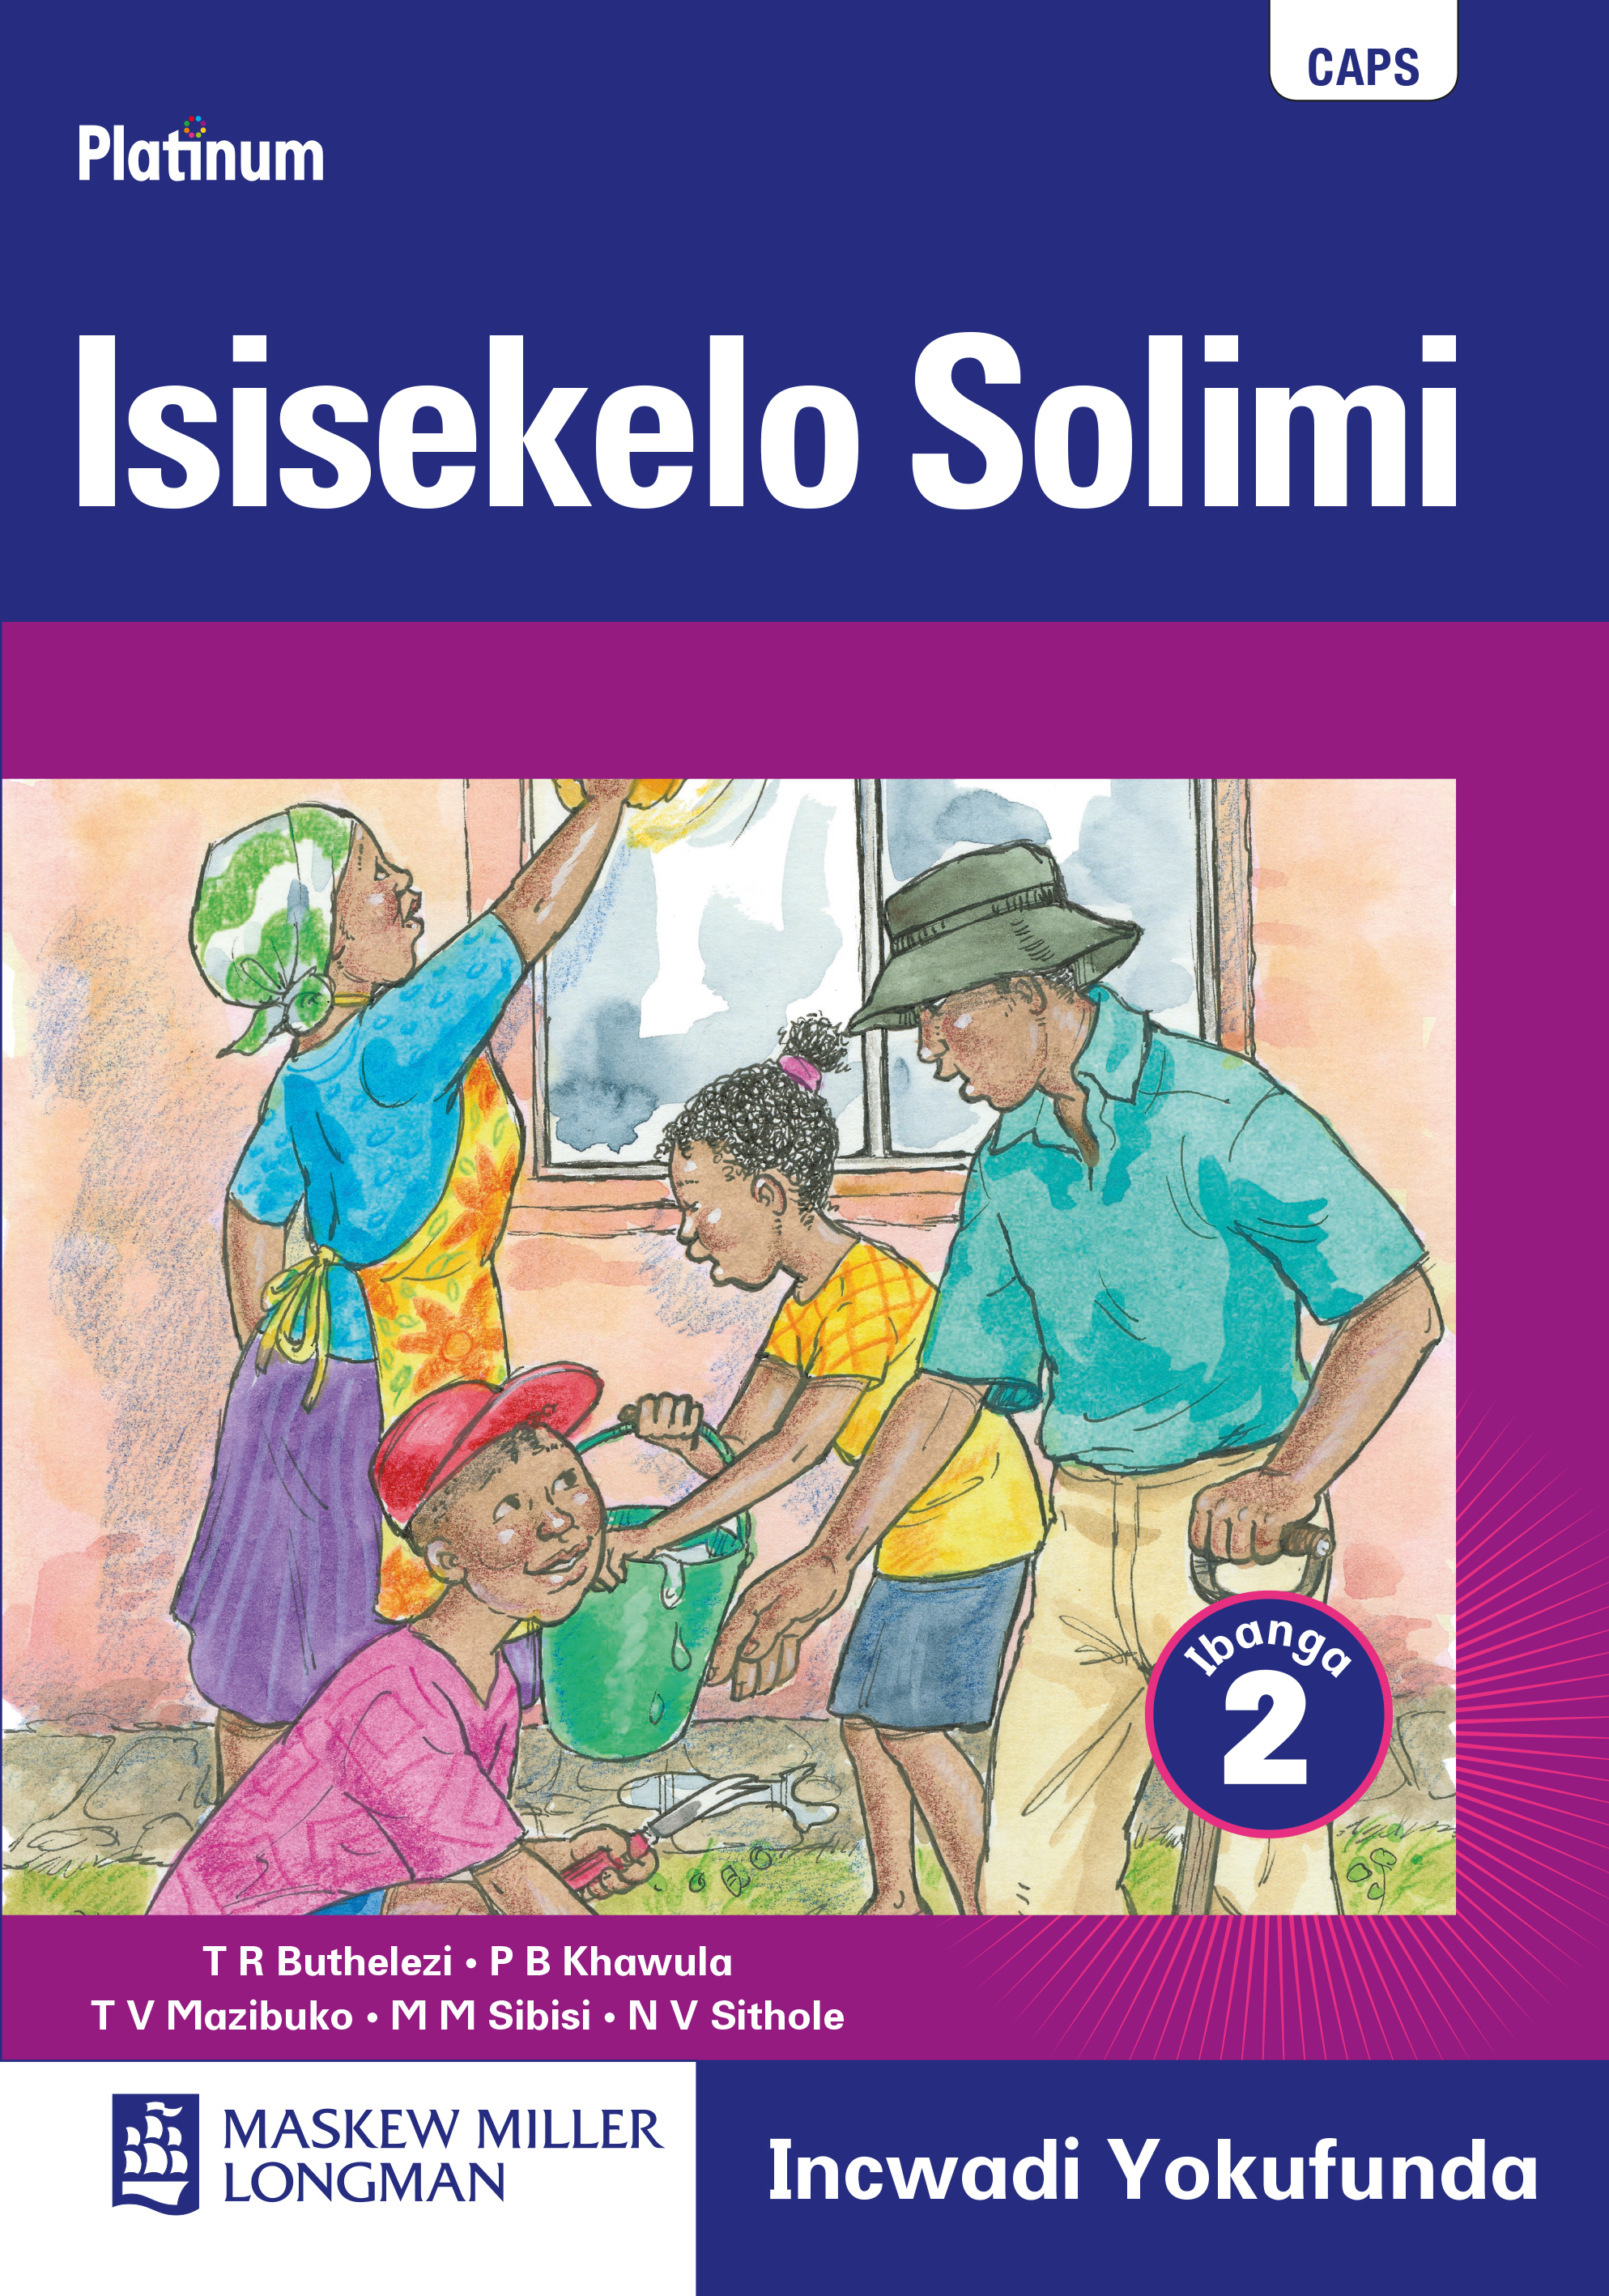 Picture of Platinum isisekelo solimi